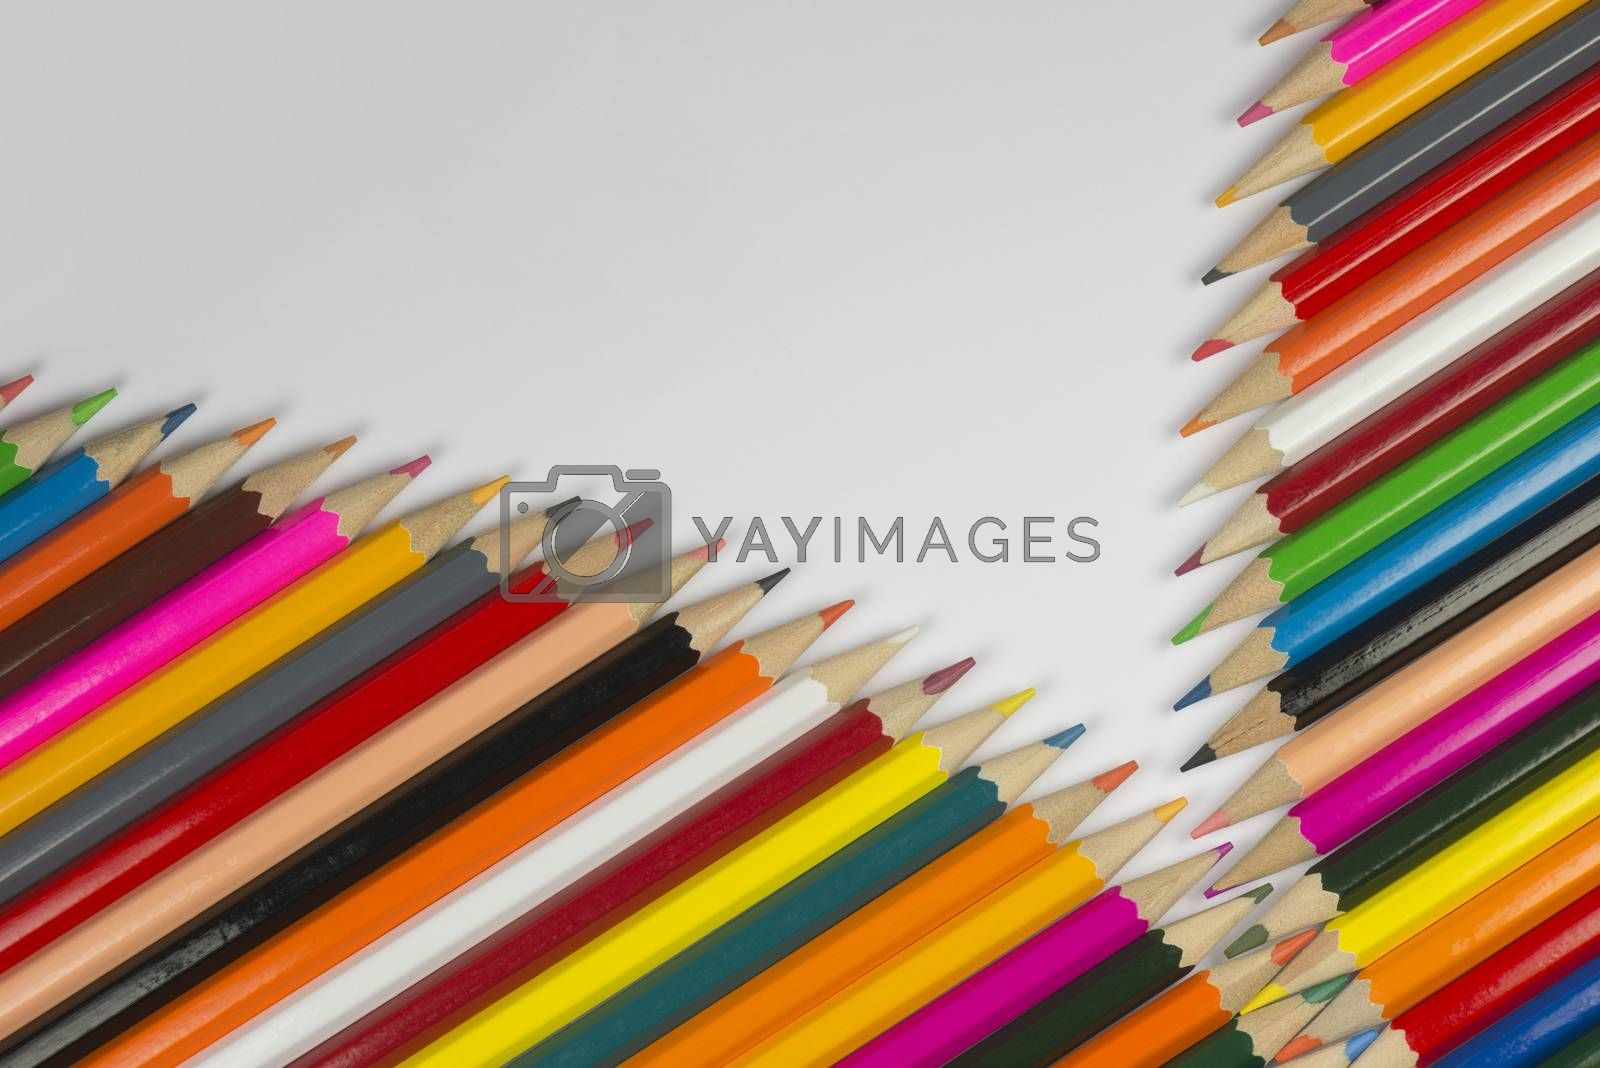 Abstract composition of a set cedar wooden colour pencils against a white background in zipper style